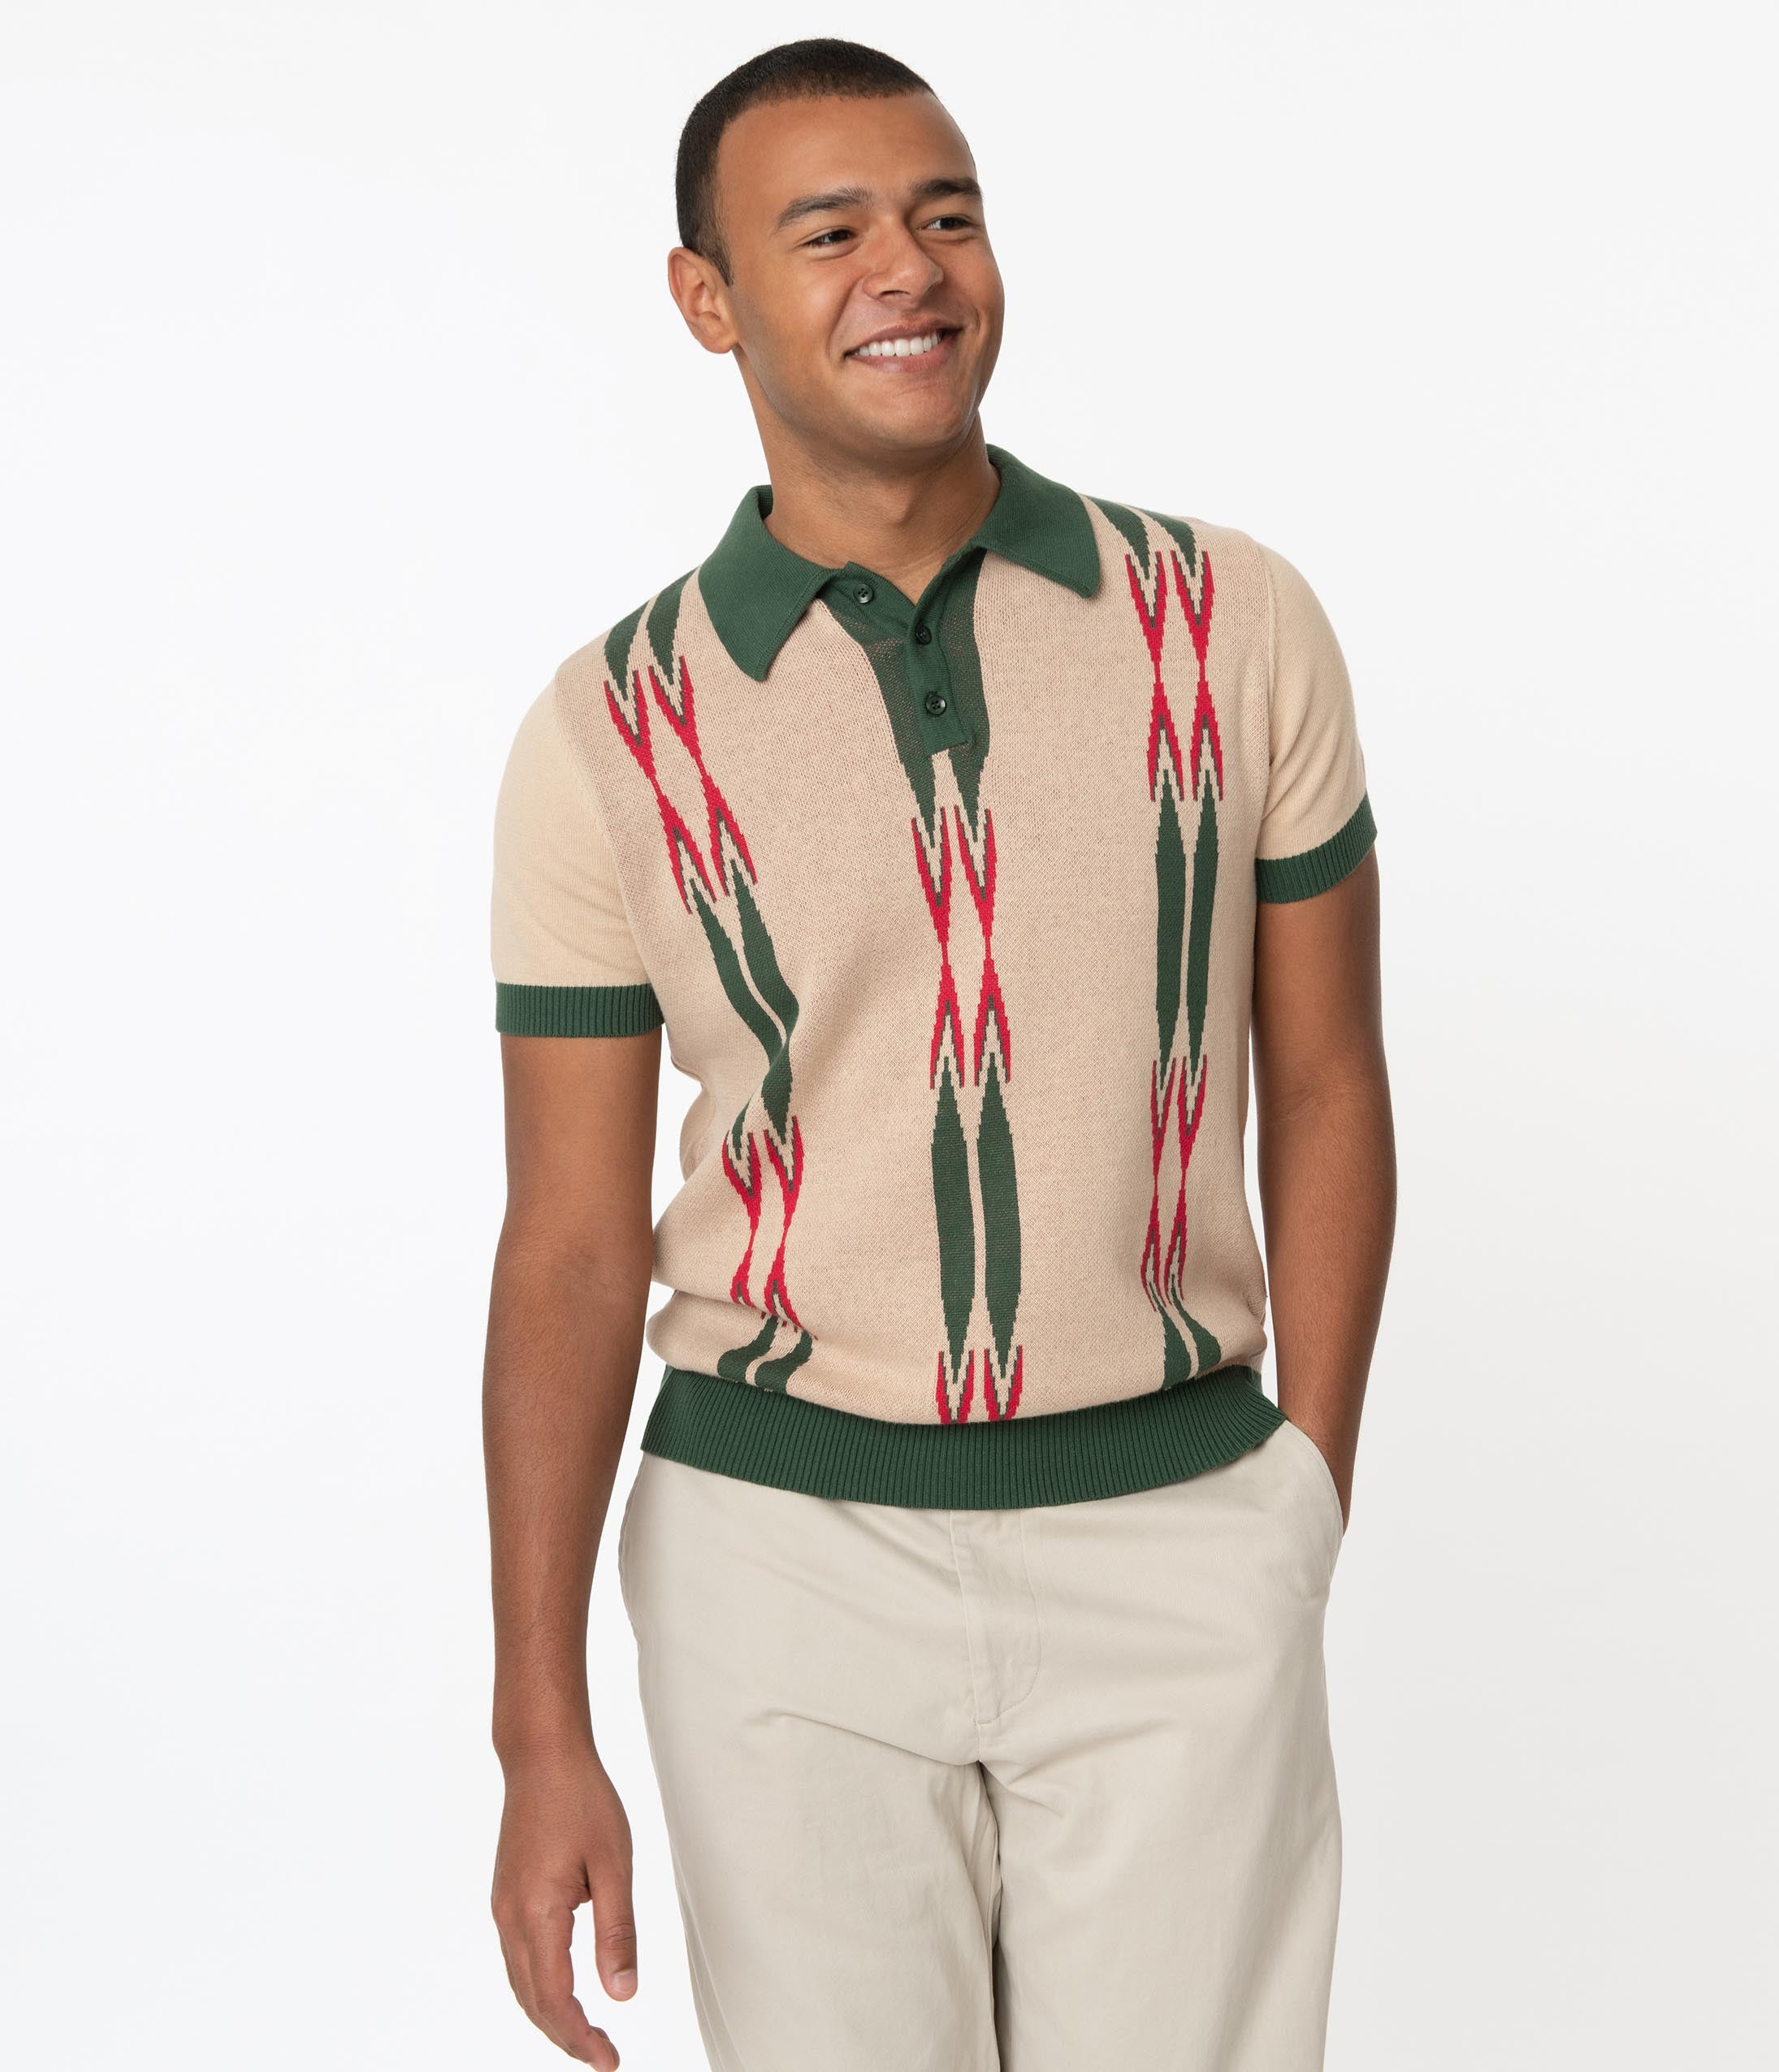 Mens Vintage Shirts – Casual, Dress, T-shirts, Polos Collectif Beige Green Marylebone Pablo Mens Polo Shirt $66.00 AT vintagedancer.com